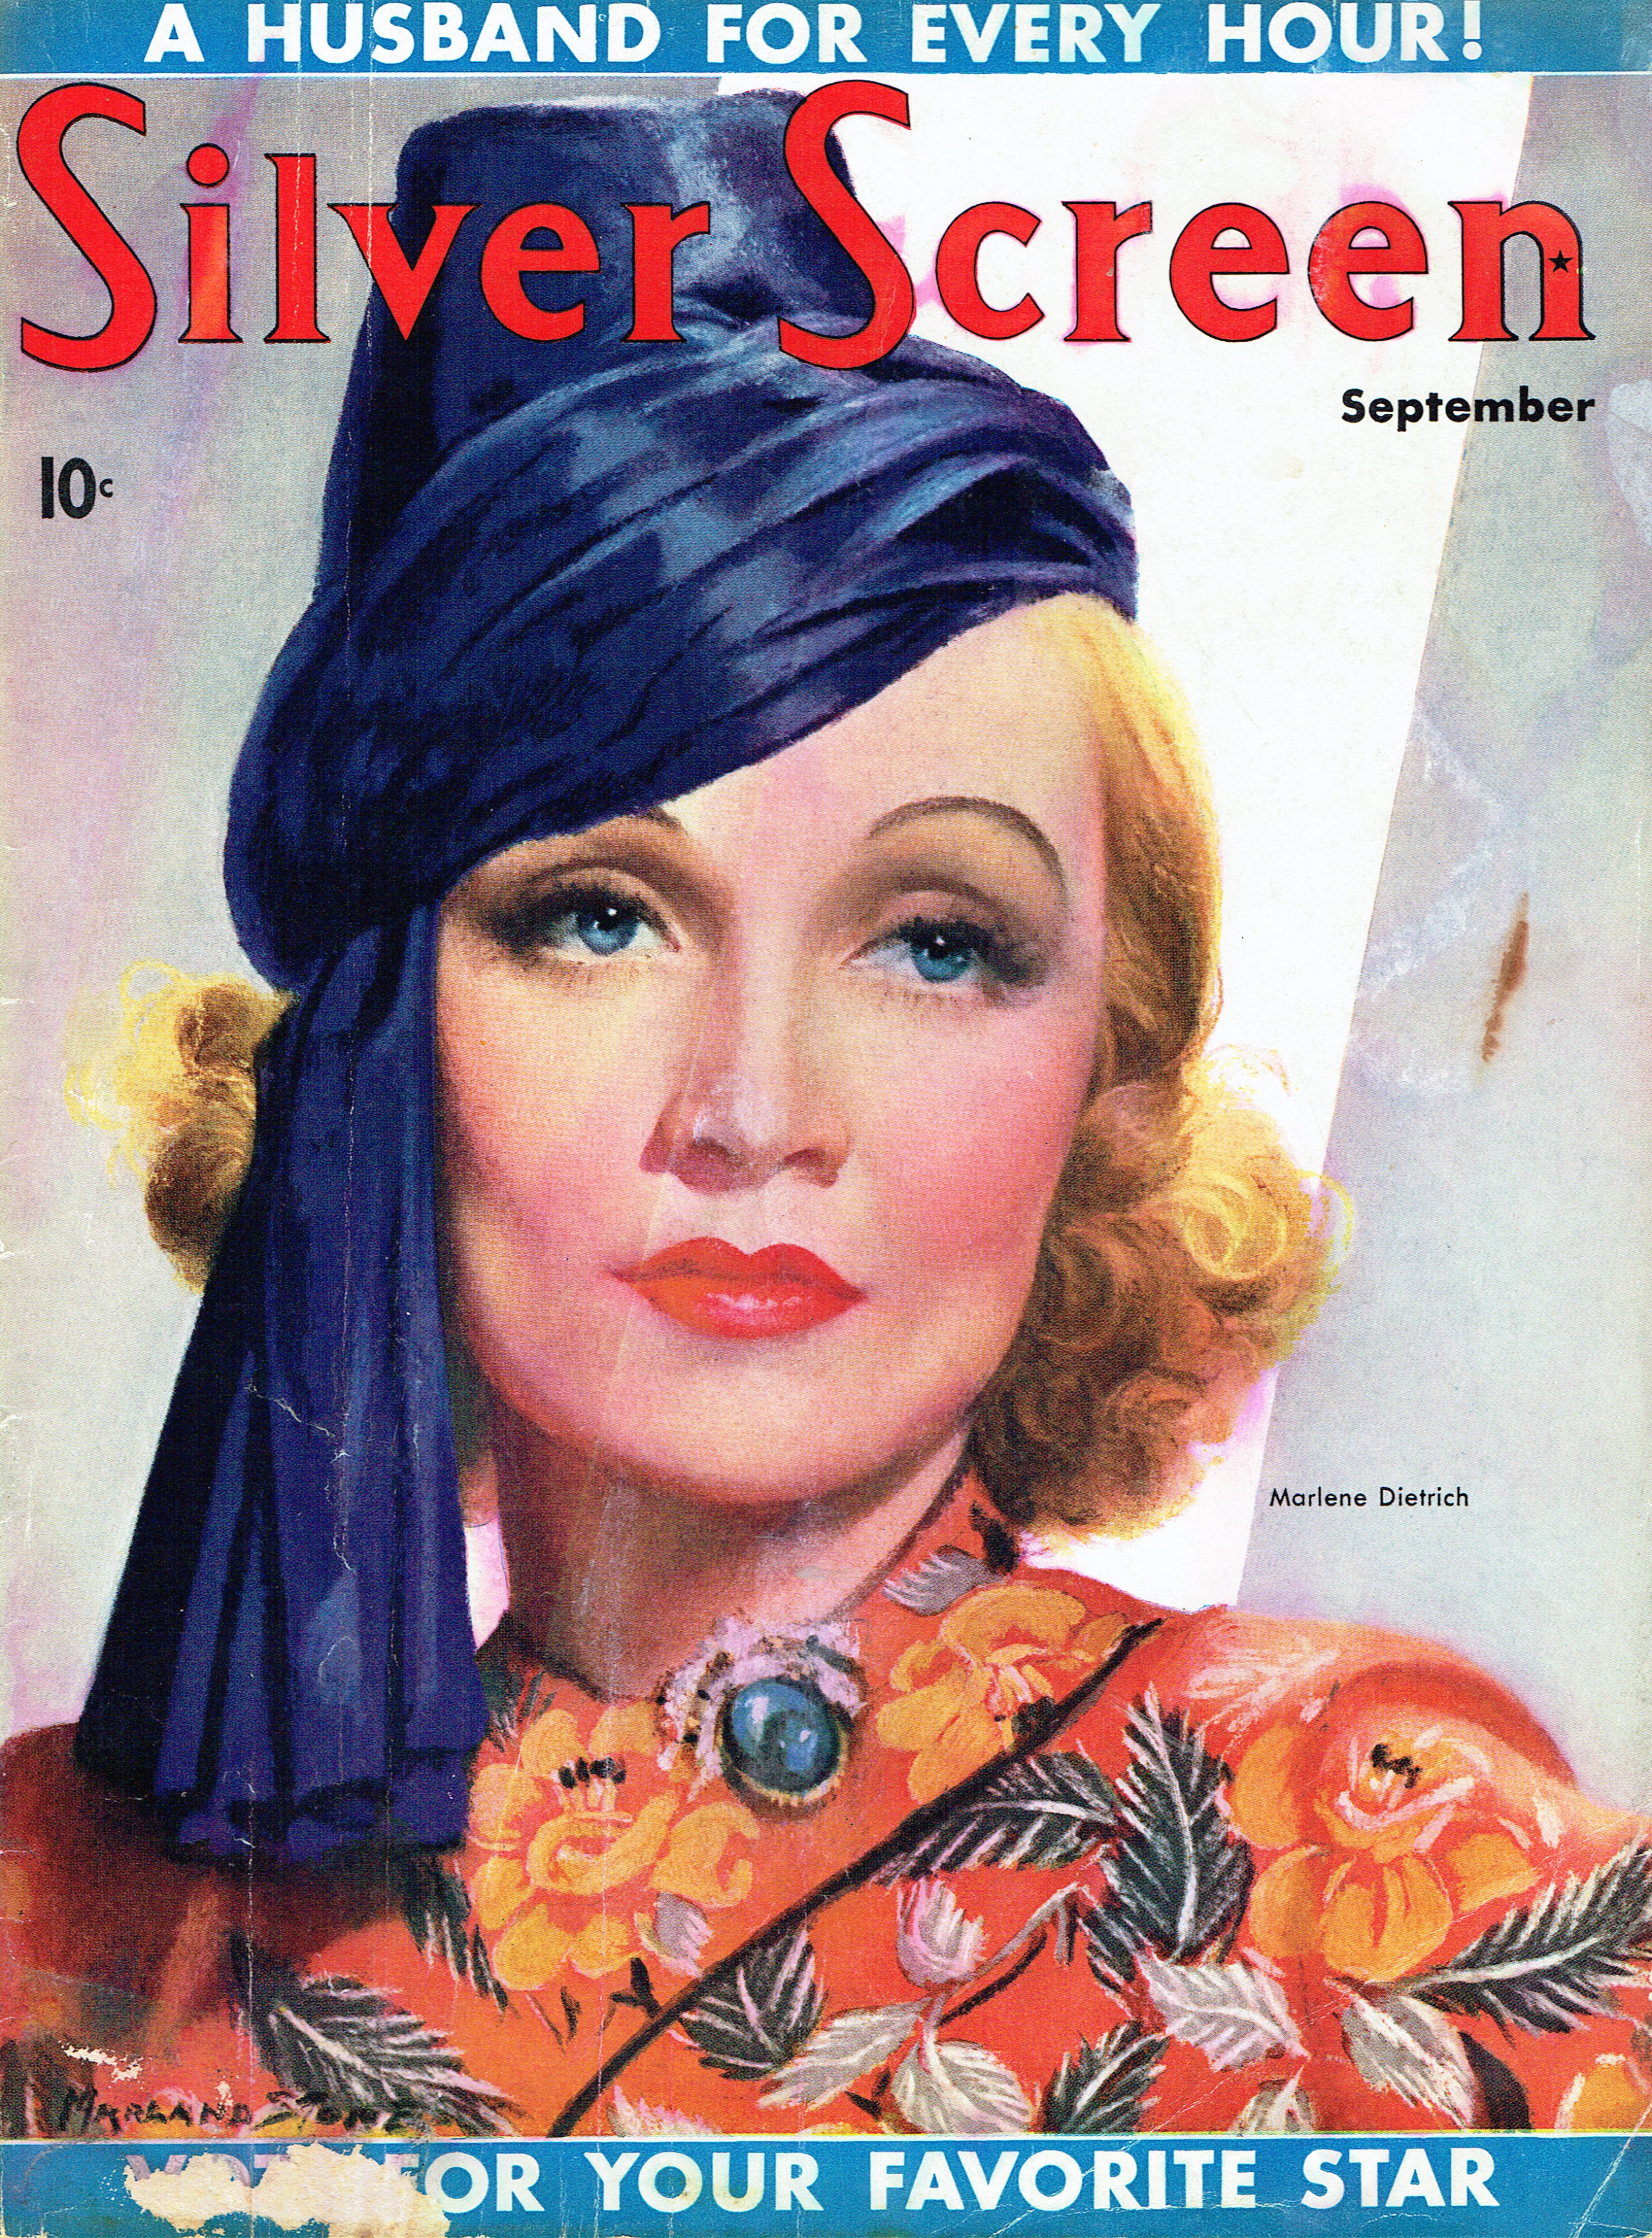 marlene dietrich silver screen september 1937 cover